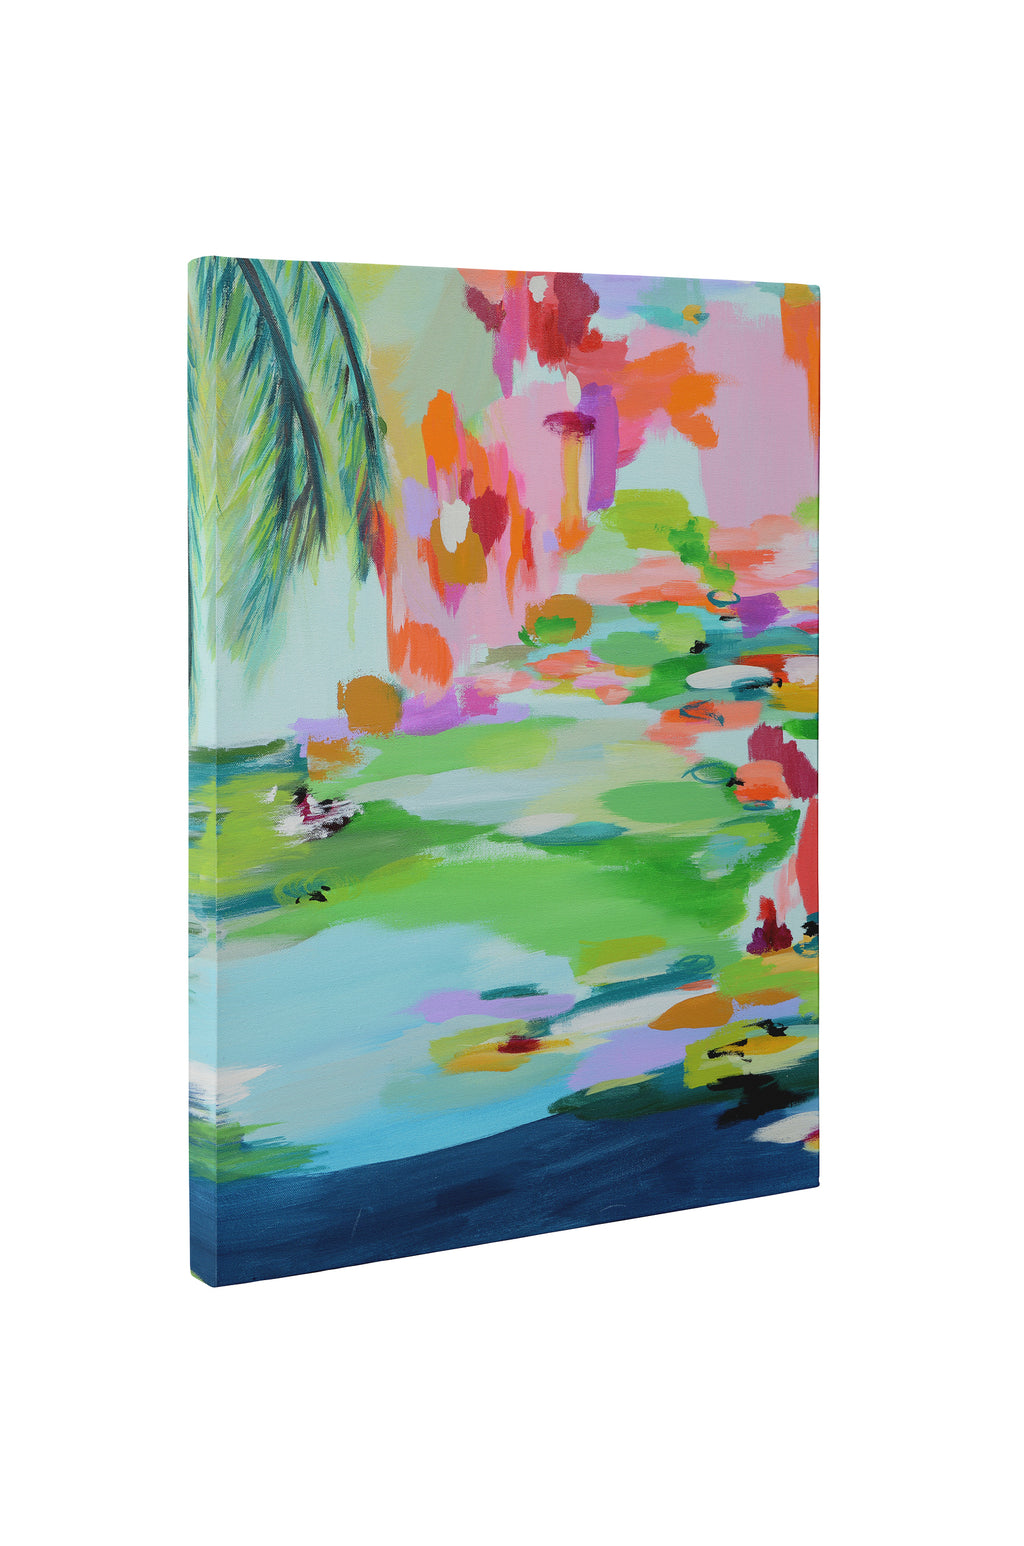 WALK INS WELCOME Premium Canvas Gallery Wrap By Susan Skelley